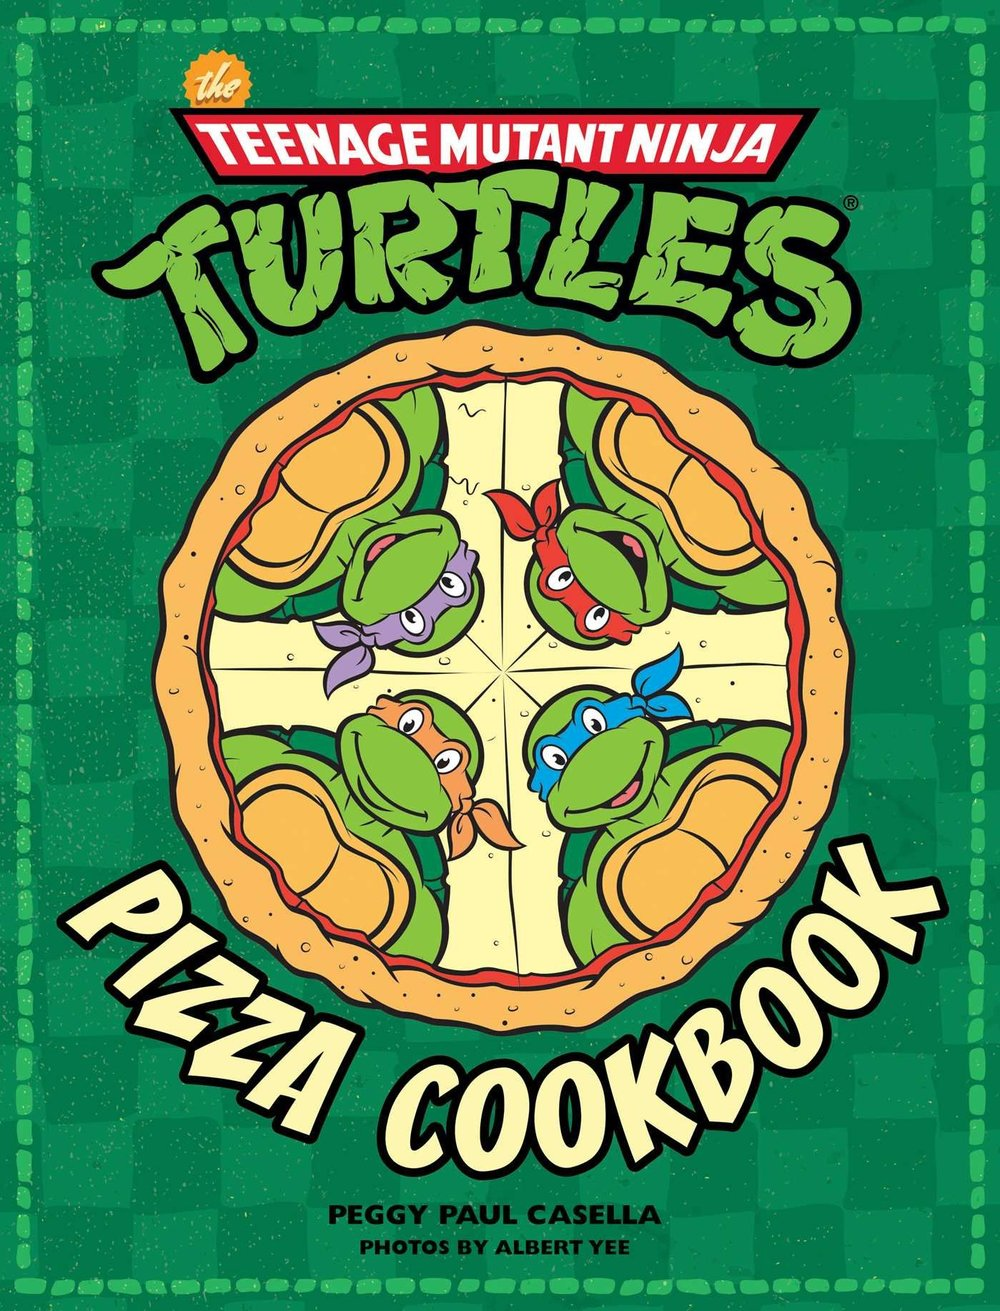 the-teenage-mutant-ninja-turtles-pizza-cookbook-has-got-some-crazy-recipes2